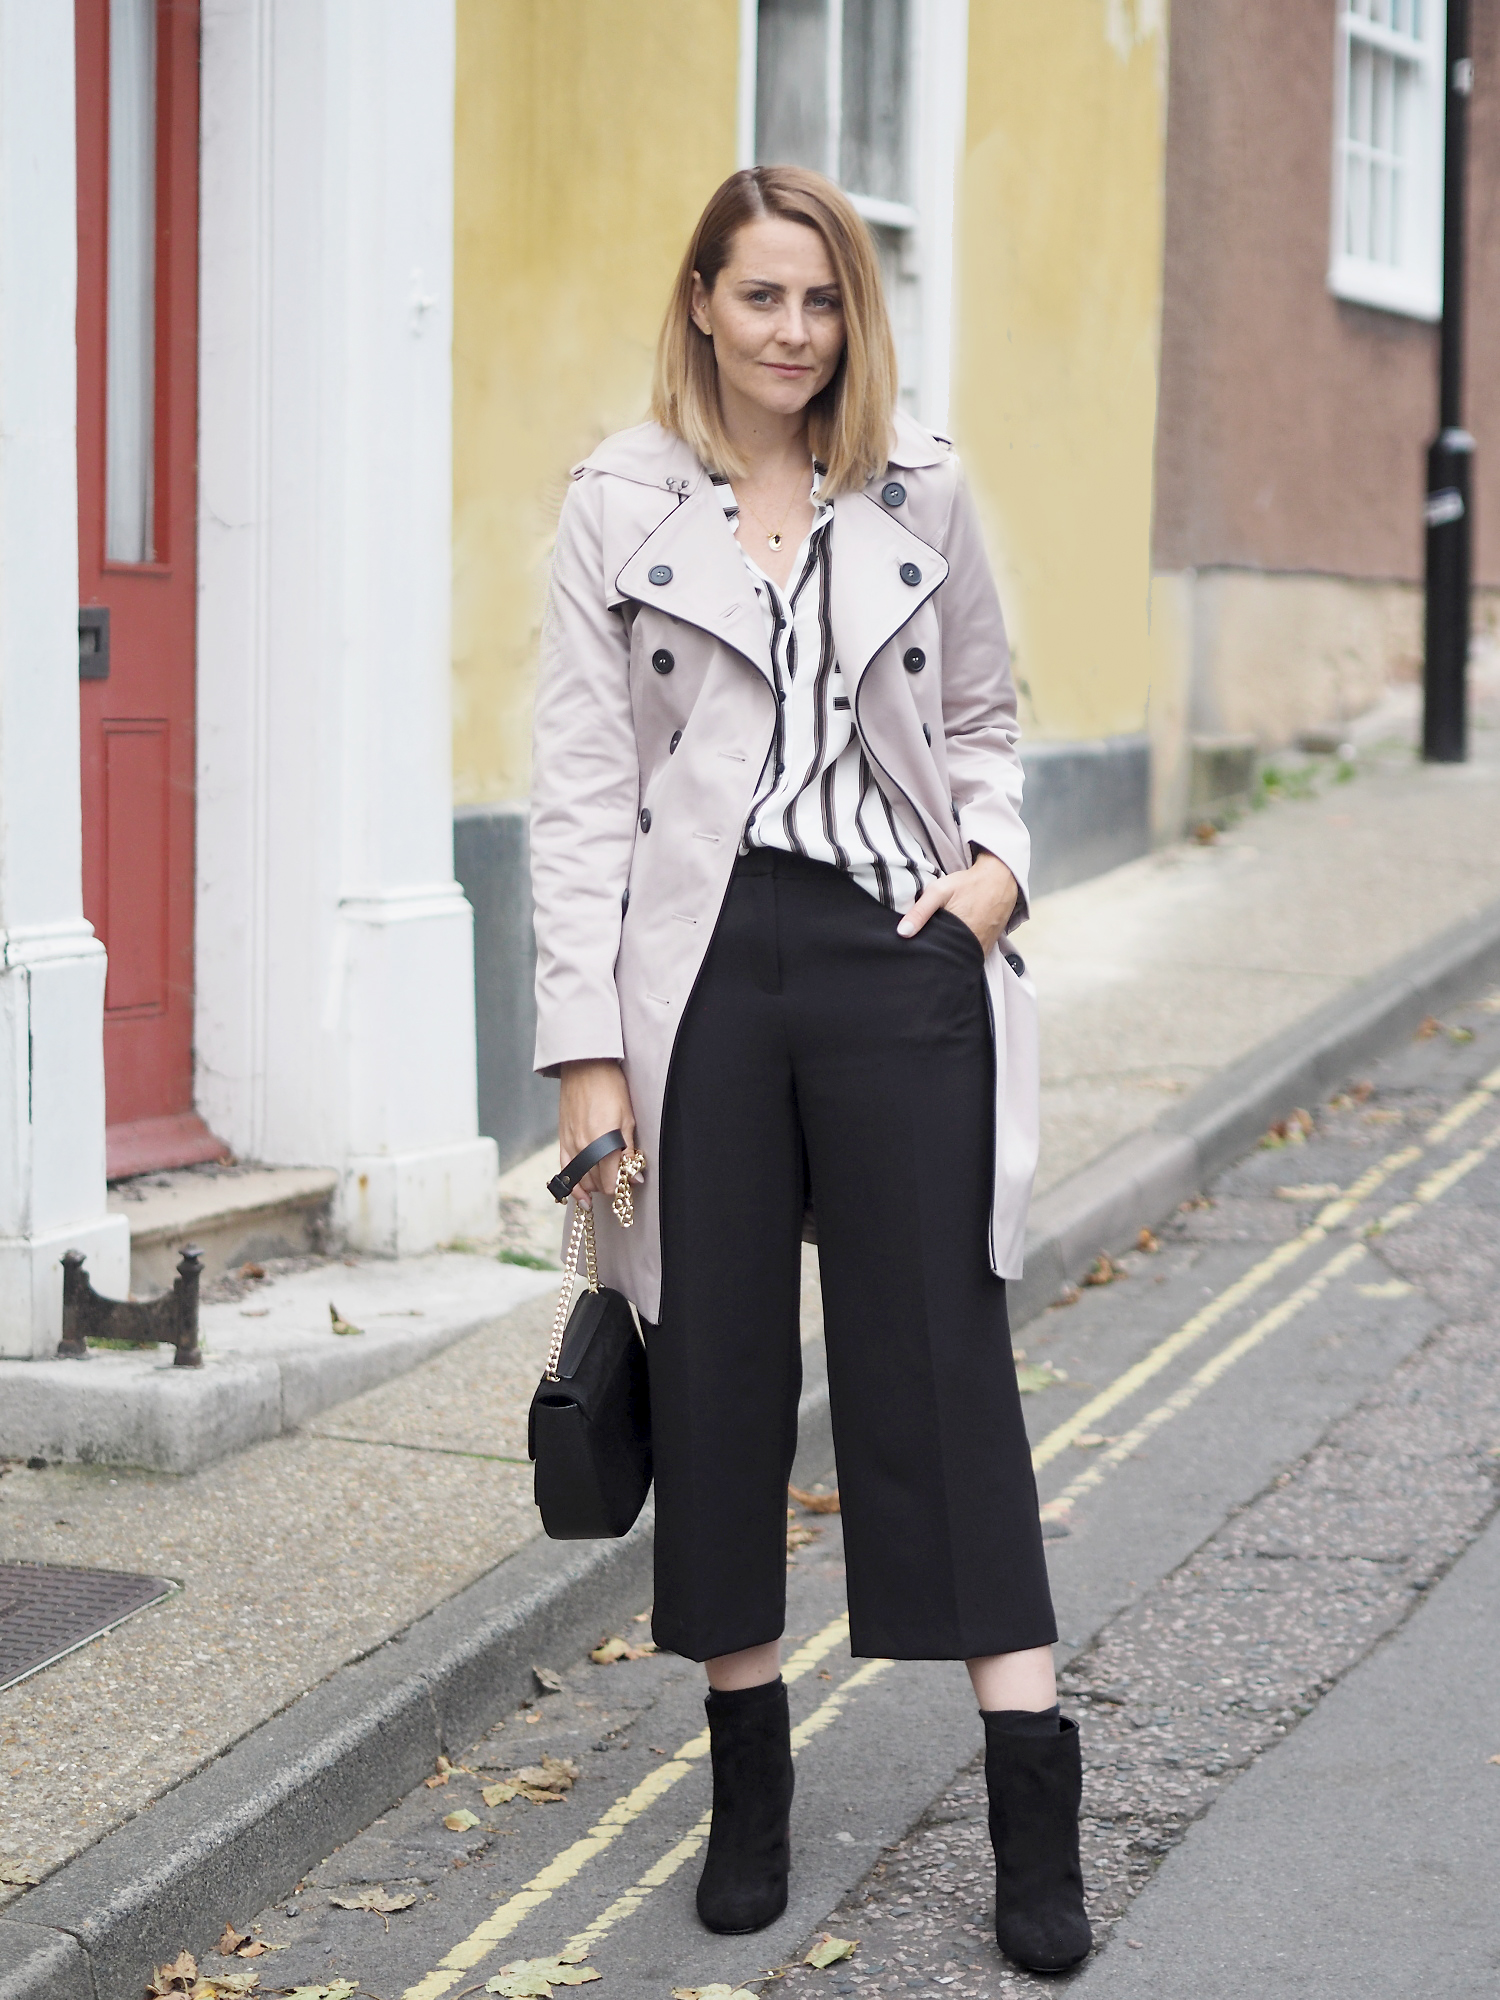 341383318f8 How to wear the trench coat - Two Ways - Bang on Style